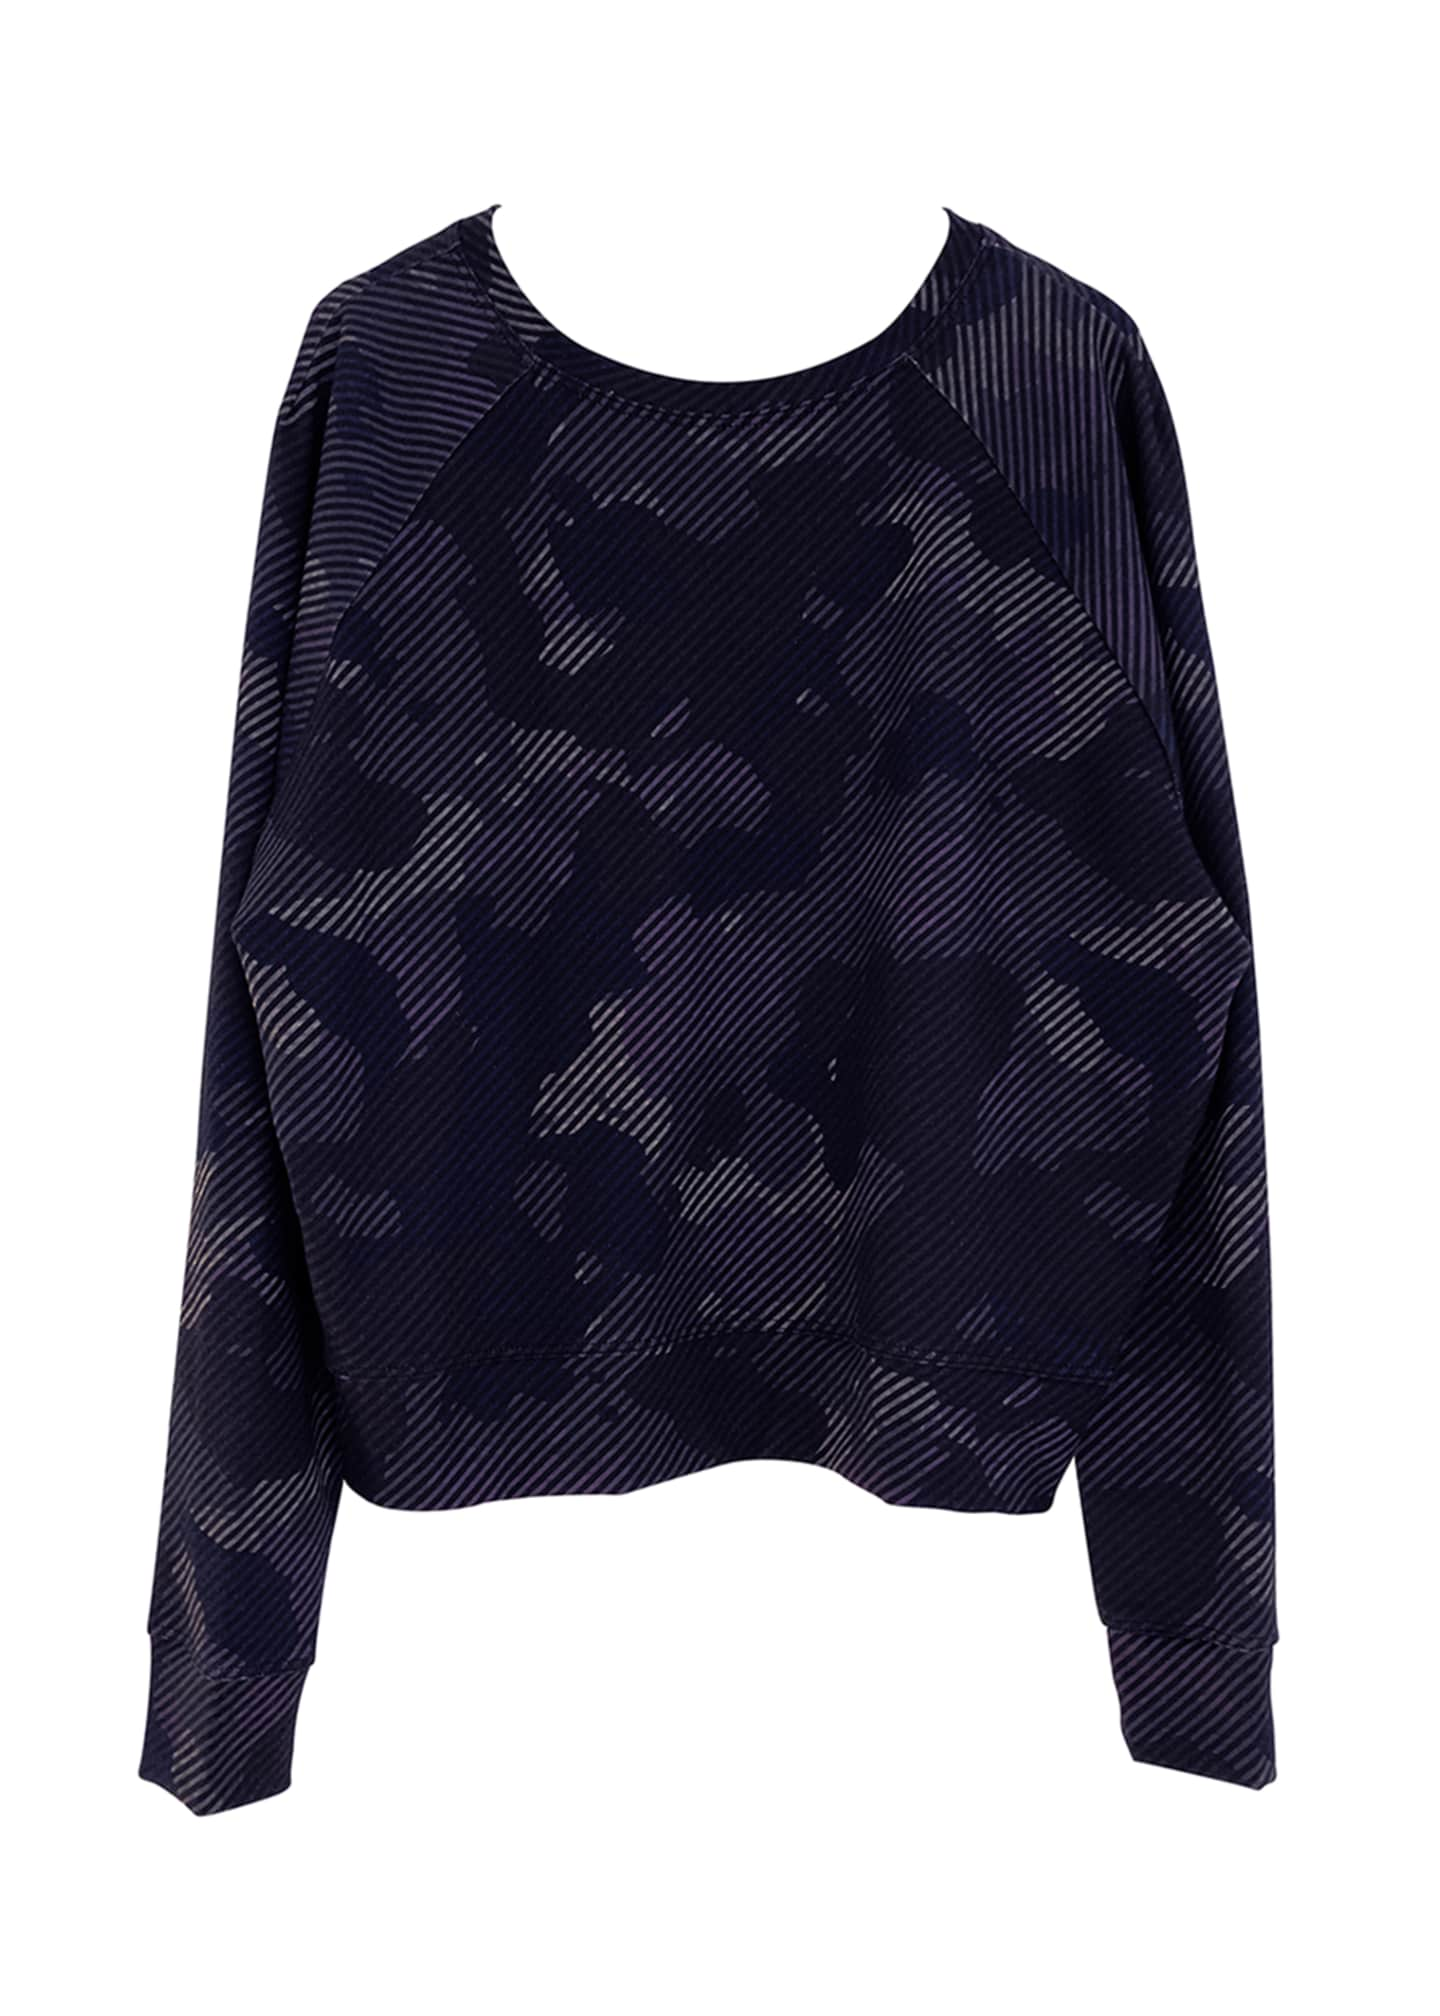 Image 1 of 1: Girl's Striped Camo Printed Long-Sleeve Crewneck Top, Size 7-16